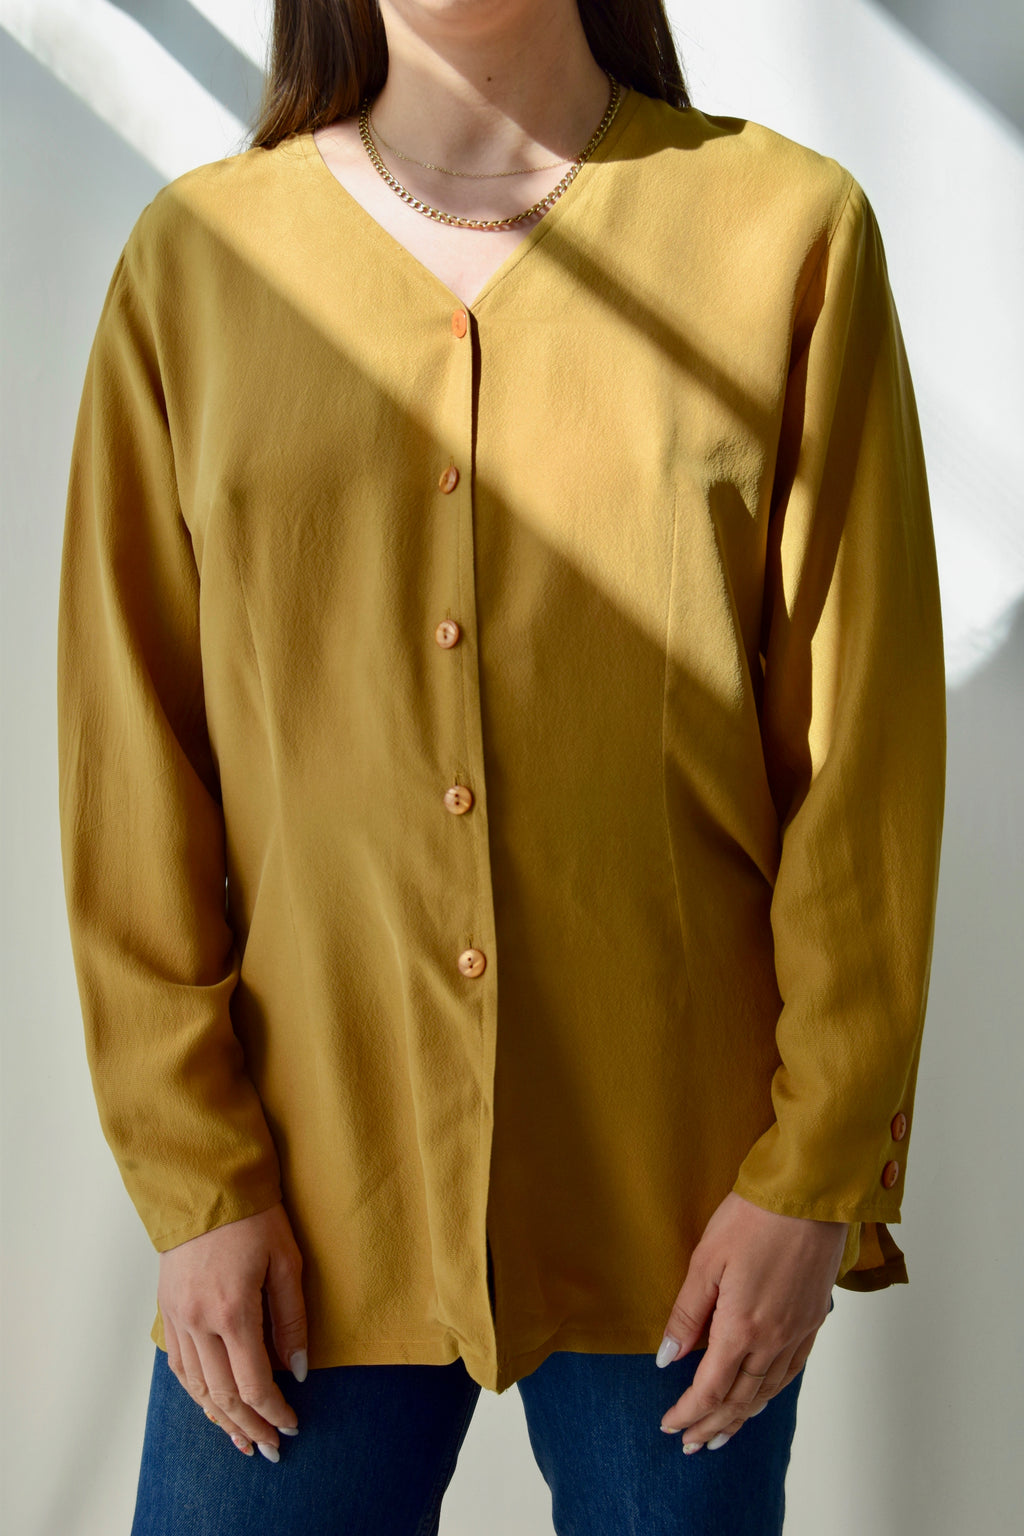 Mustard Silk Blouse FREE SHIPPING TO THE U.S.